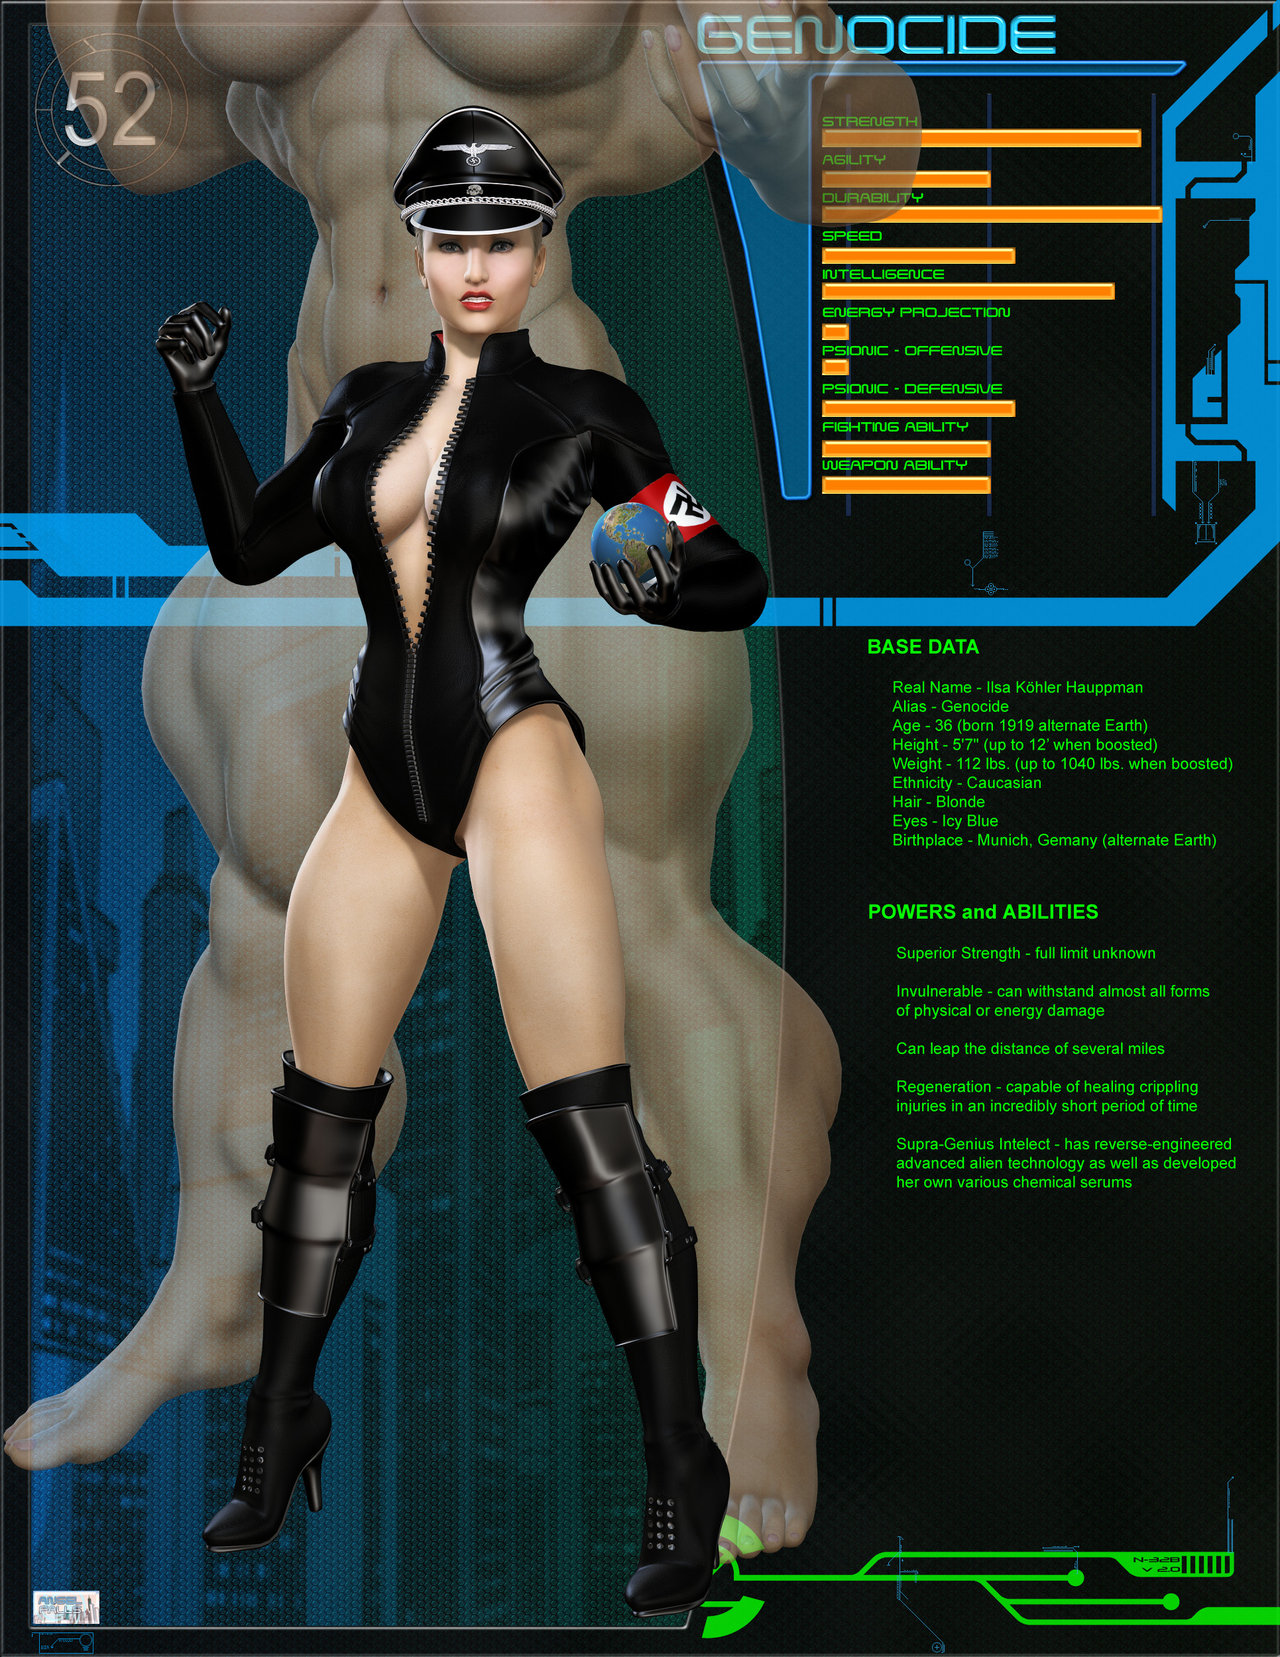 o52_file___genocide_by_soviet_superwoman-d32x2xq.jpg